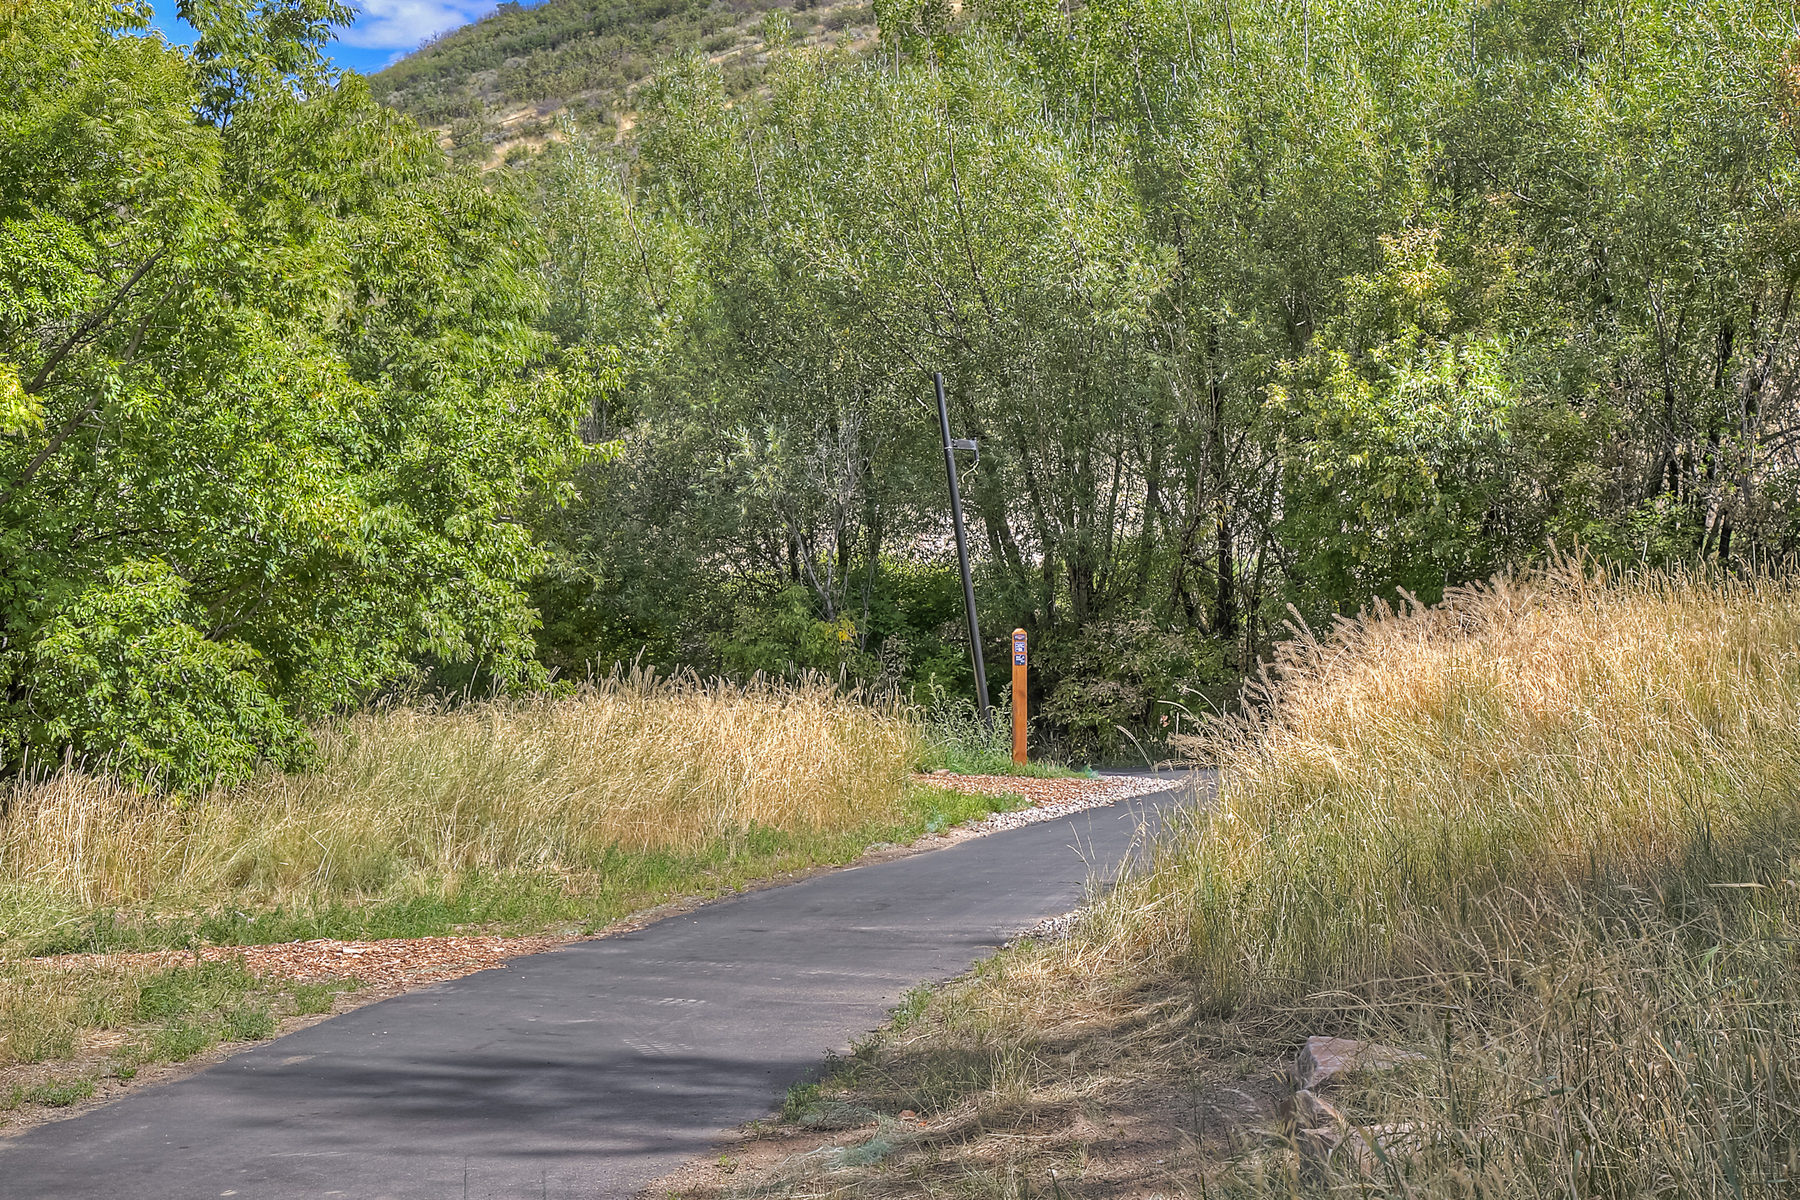 Additional photo for property listing at 3 Lot Development Opportunity 1064 Park Ave Lot 15 & Lot 16 Park City, Utah 84060 Estados Unidos